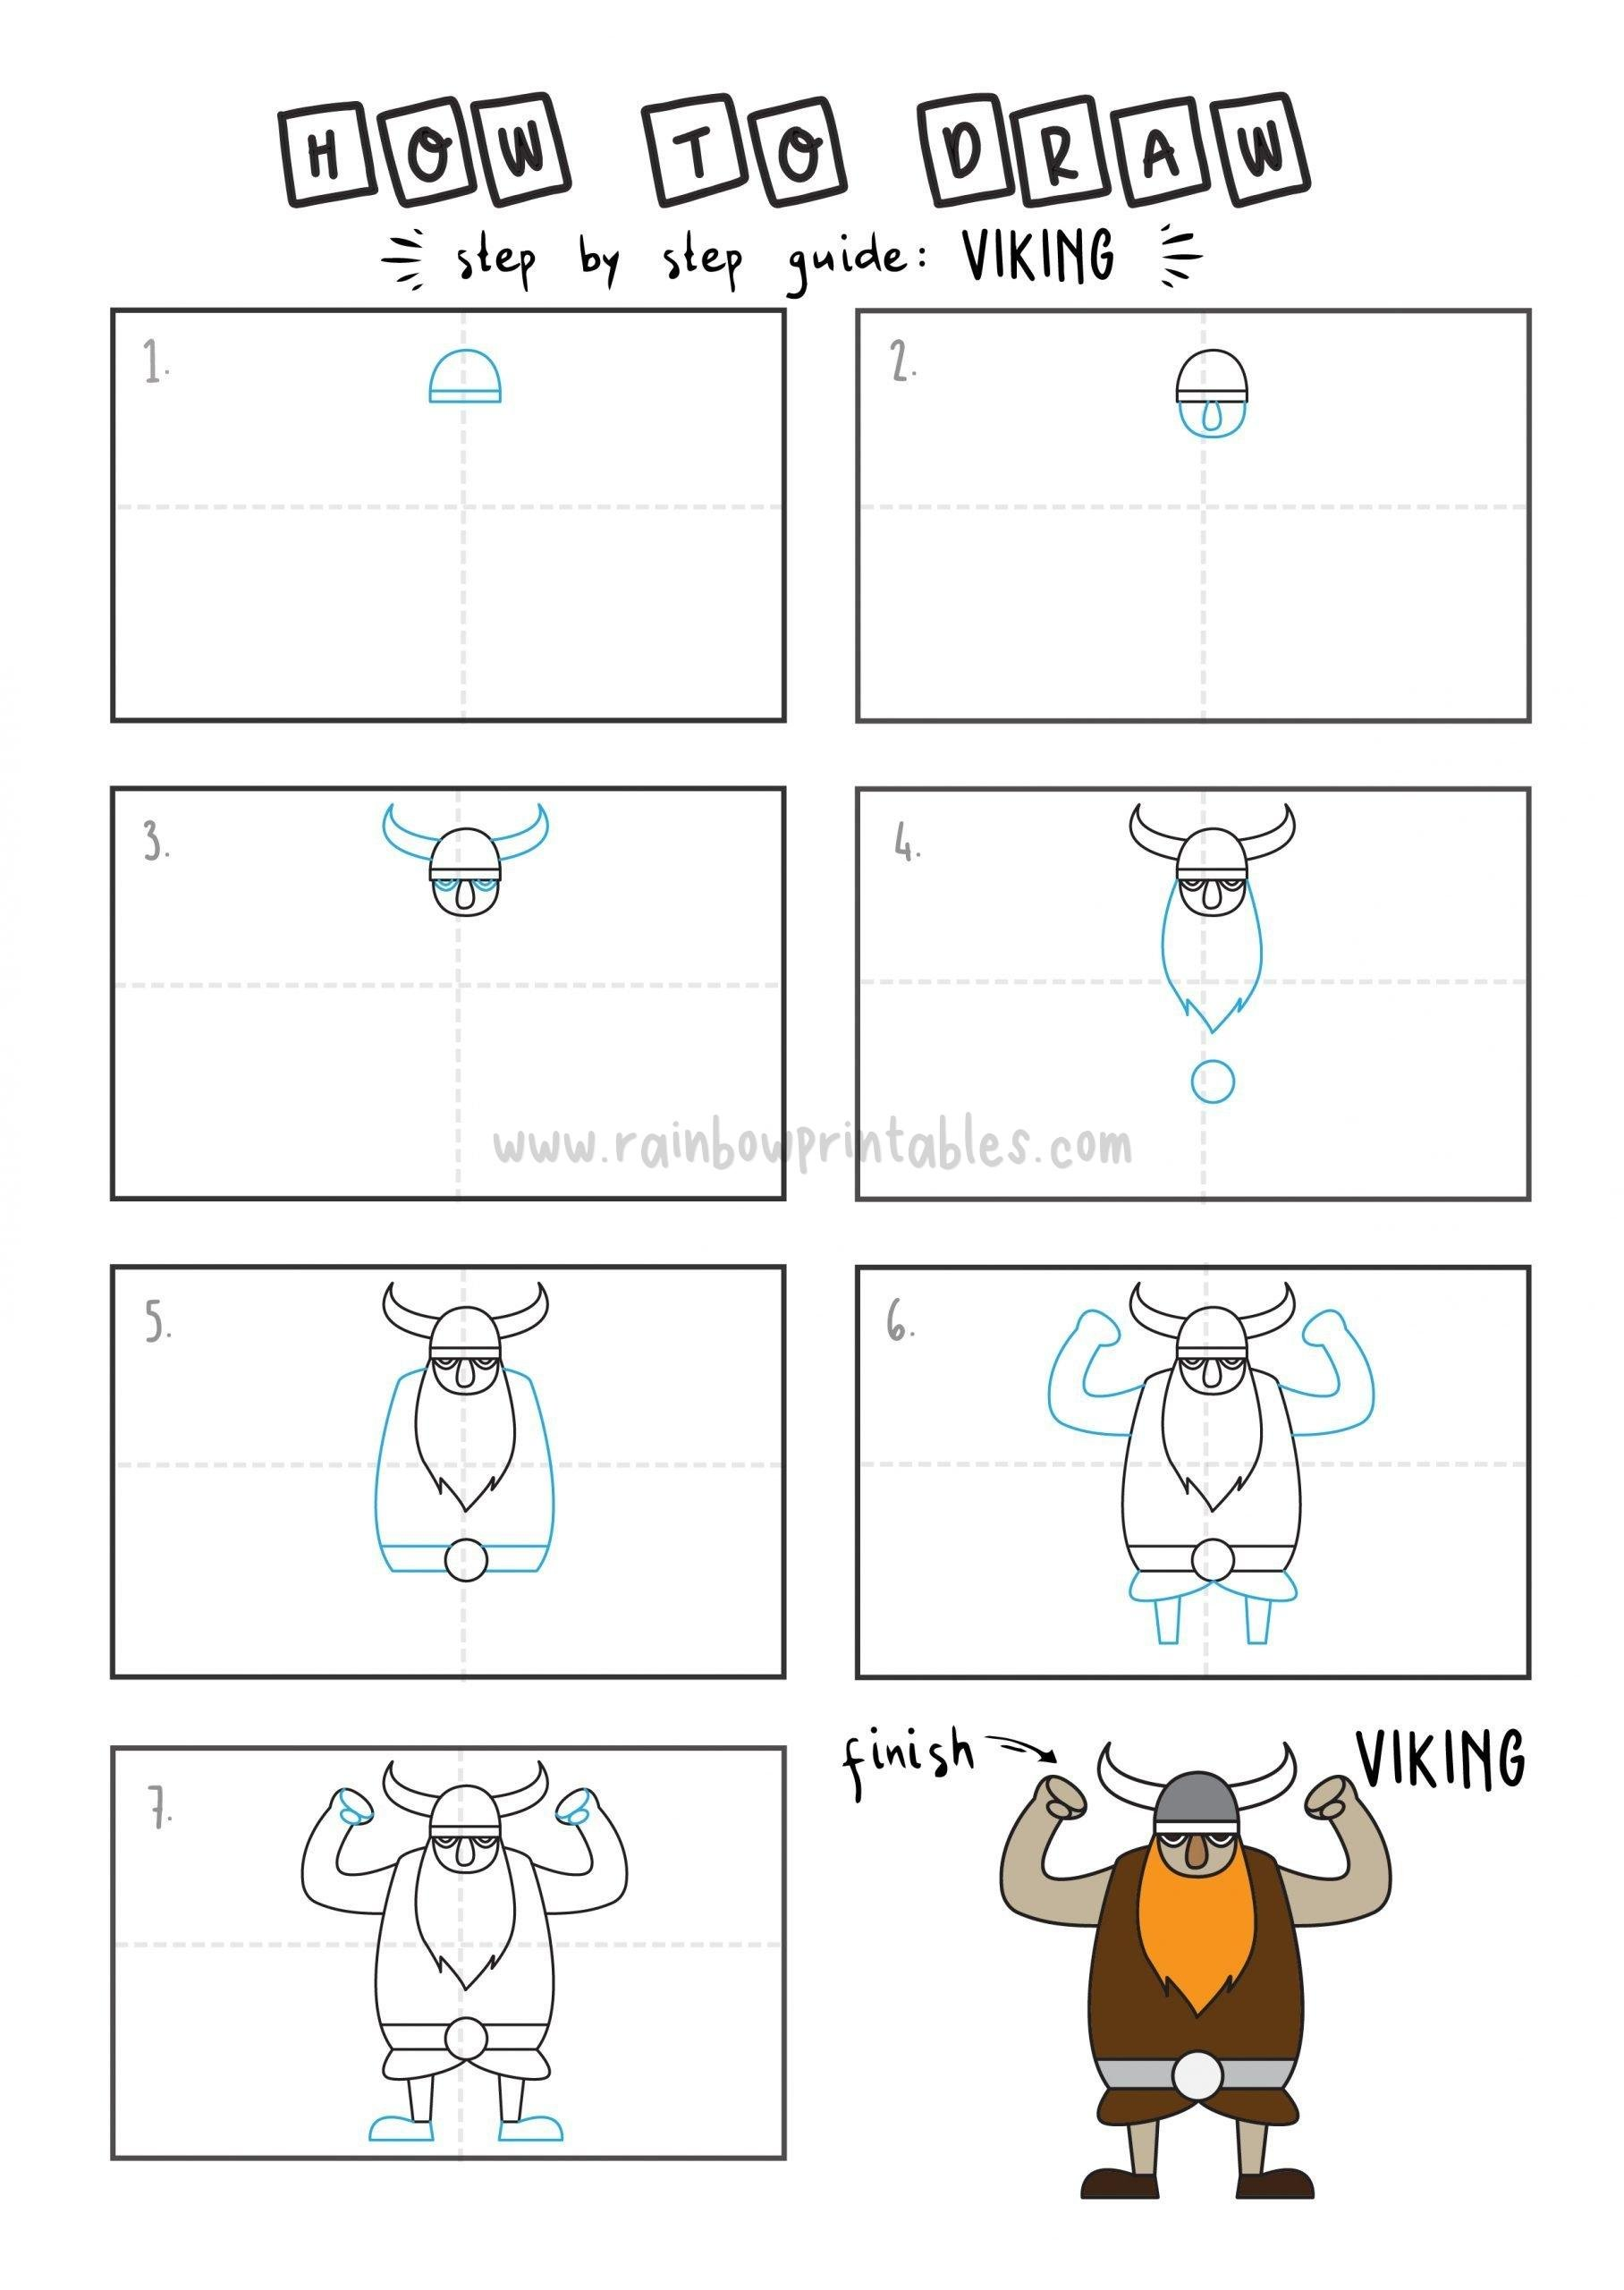 How To Draw Tutorials For Kids VIKING Step by step for kids easy simple guide